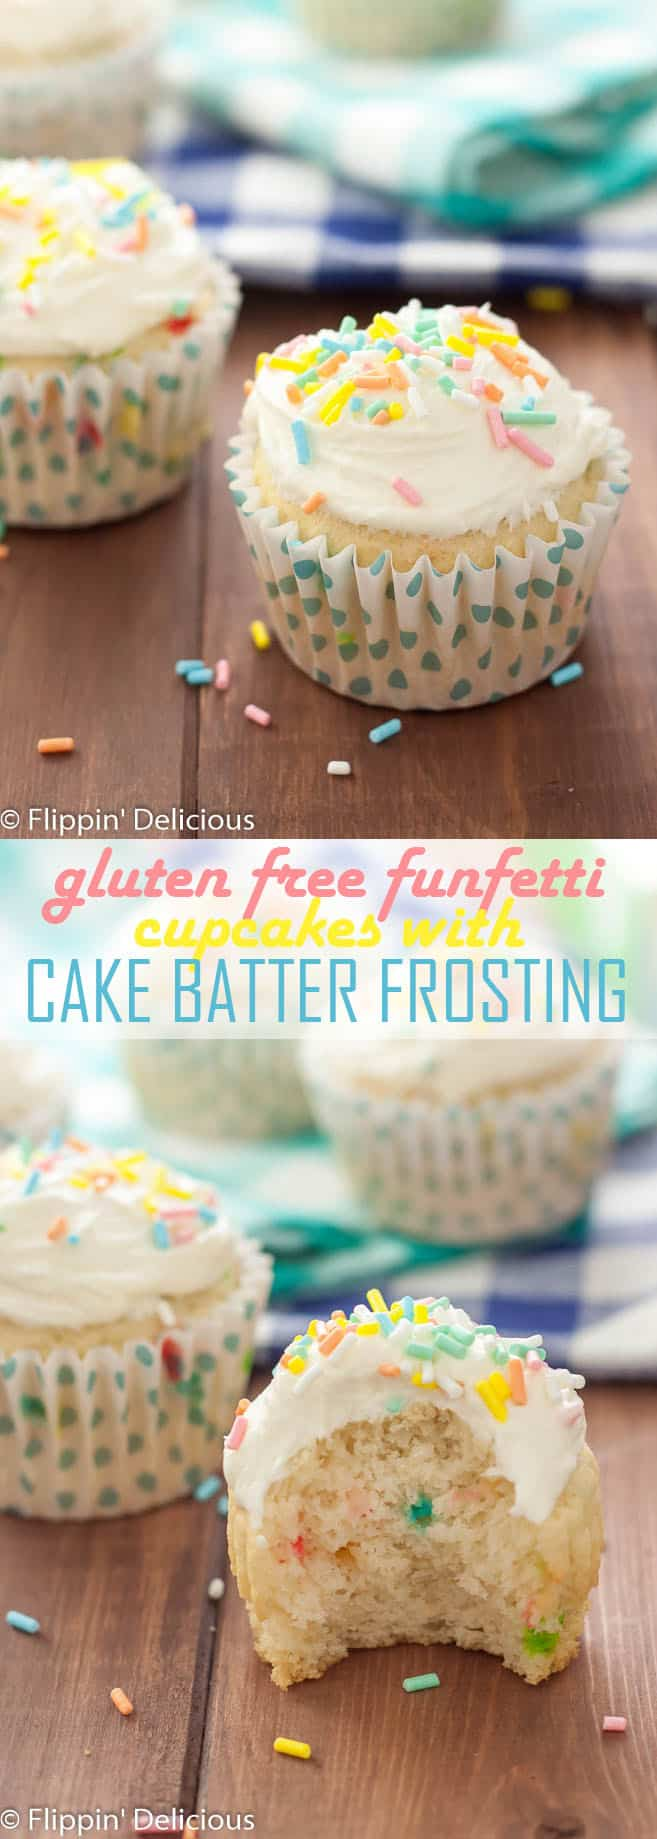 Celebrate with these easy Gluten Free Funfetti Cupcakes with GF Cake Batter Frosting!